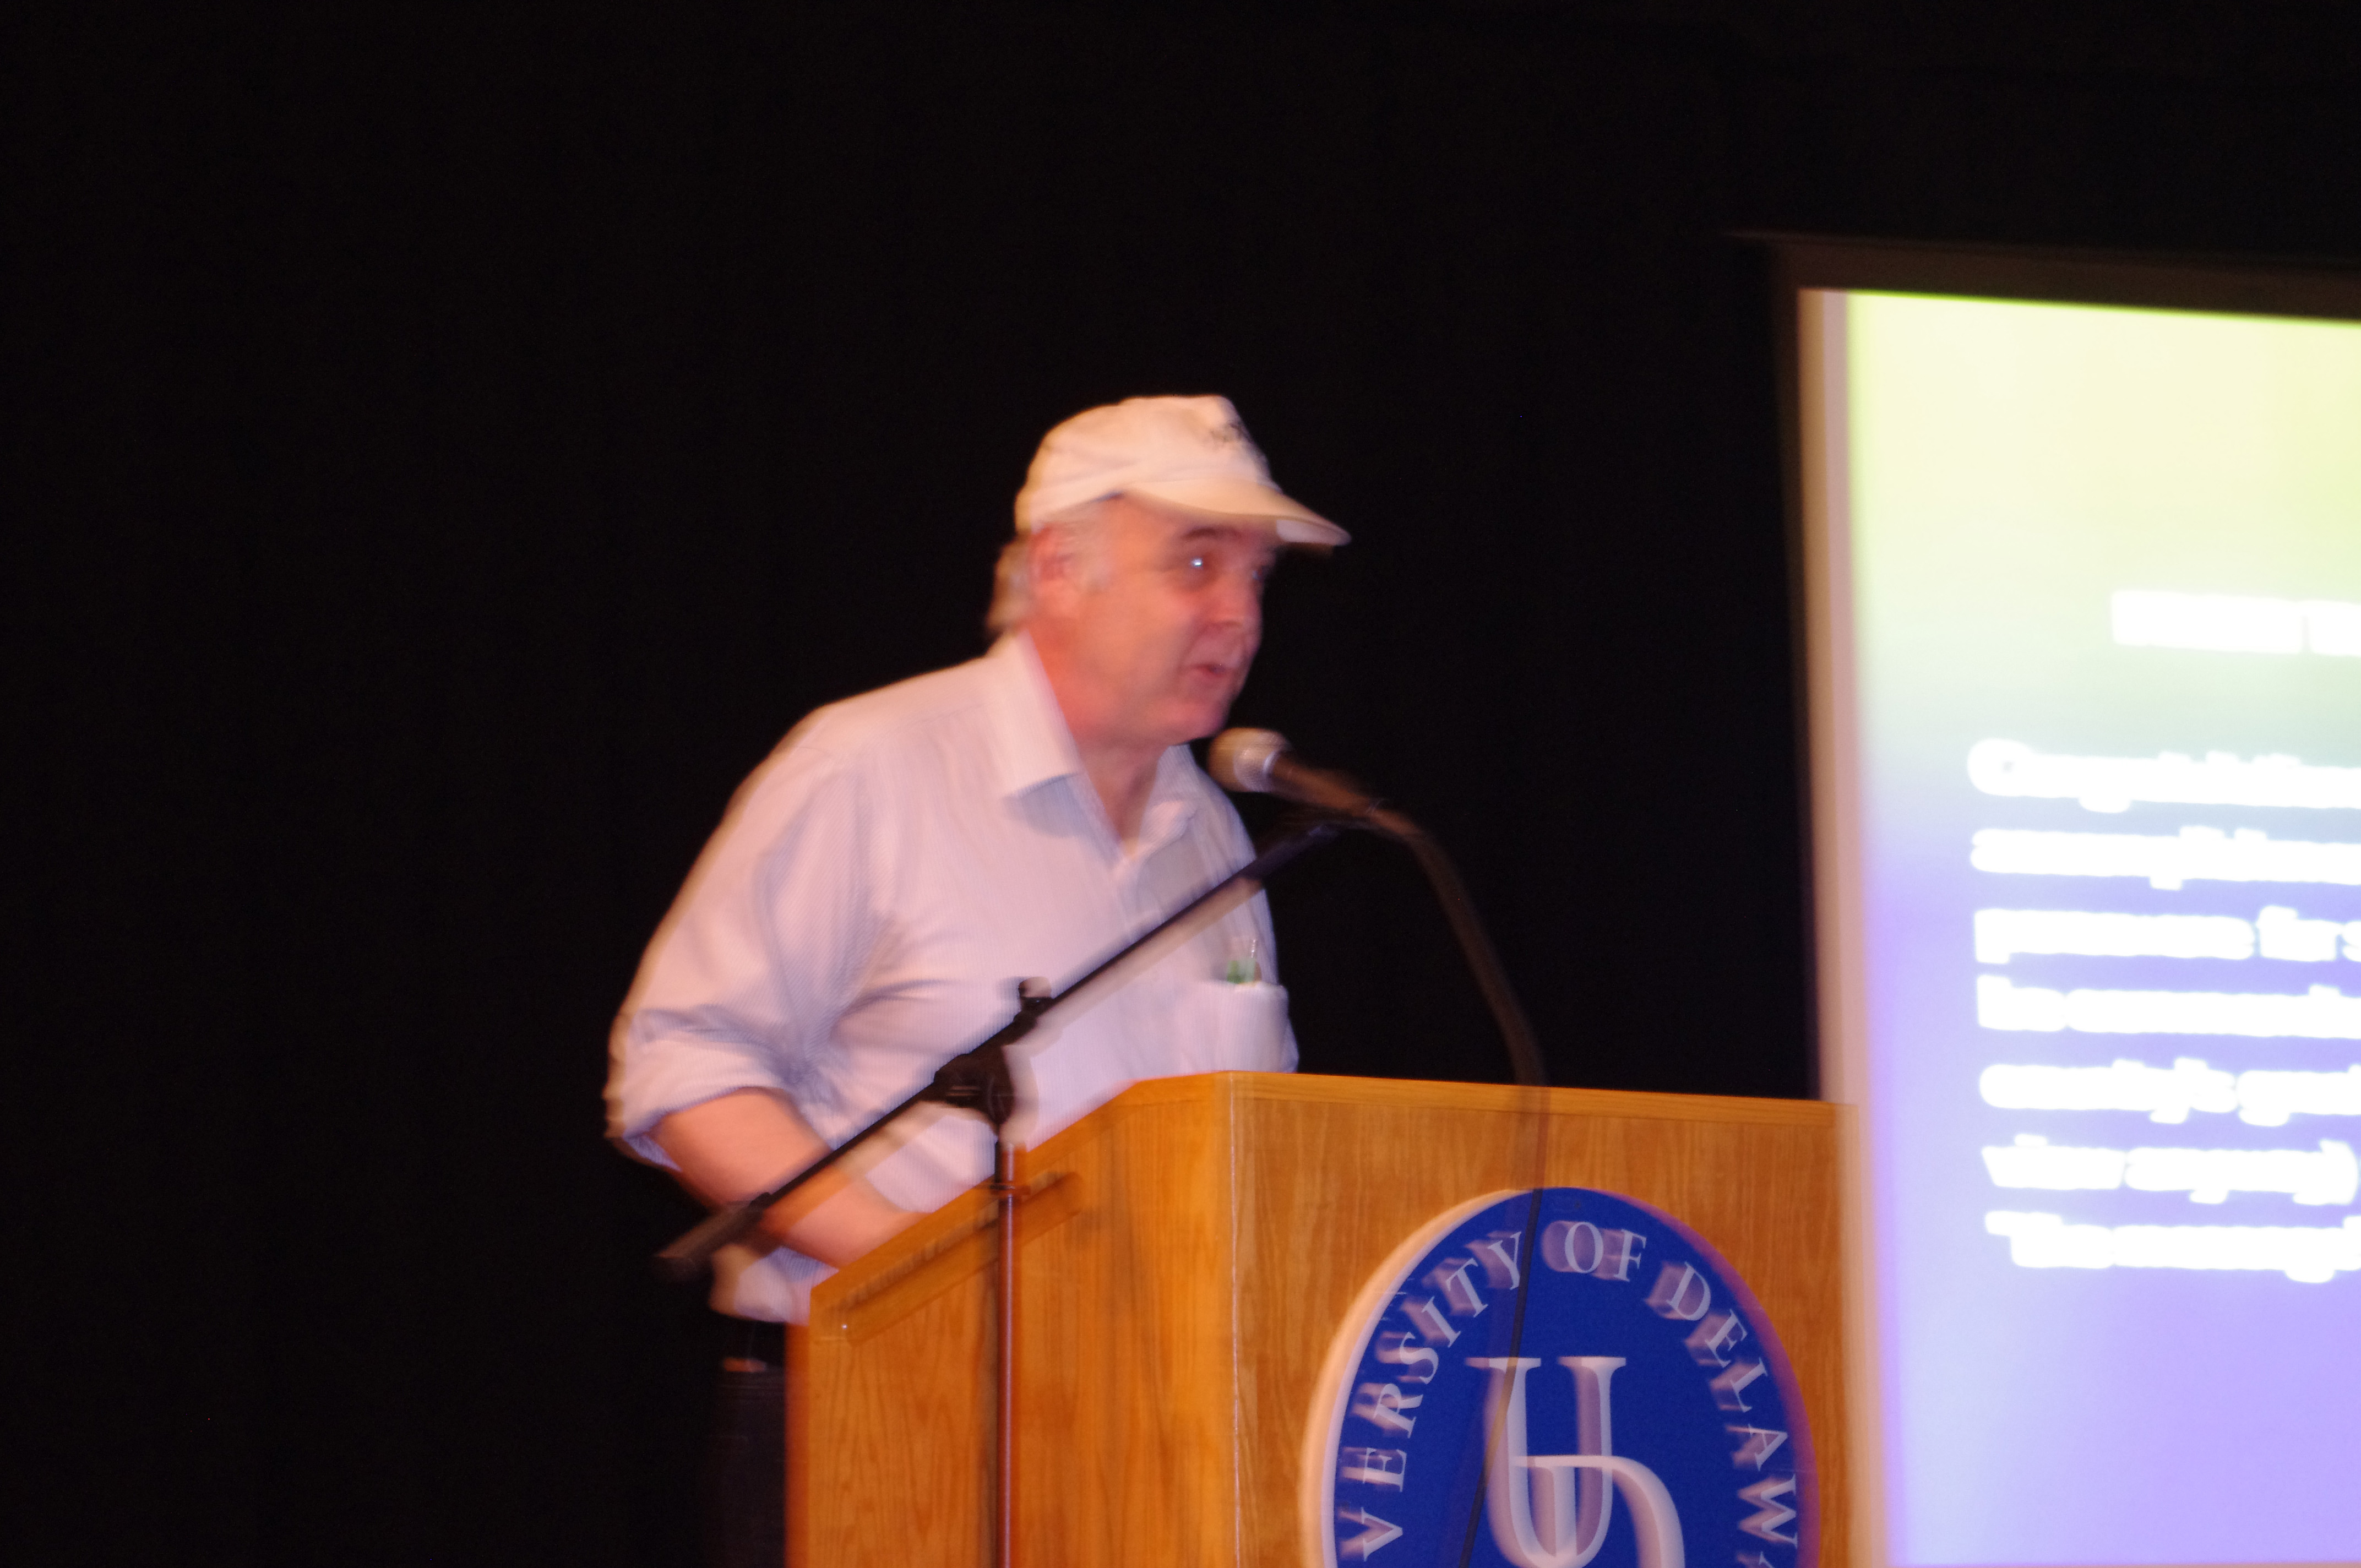 Ron Smith speaks to the audience